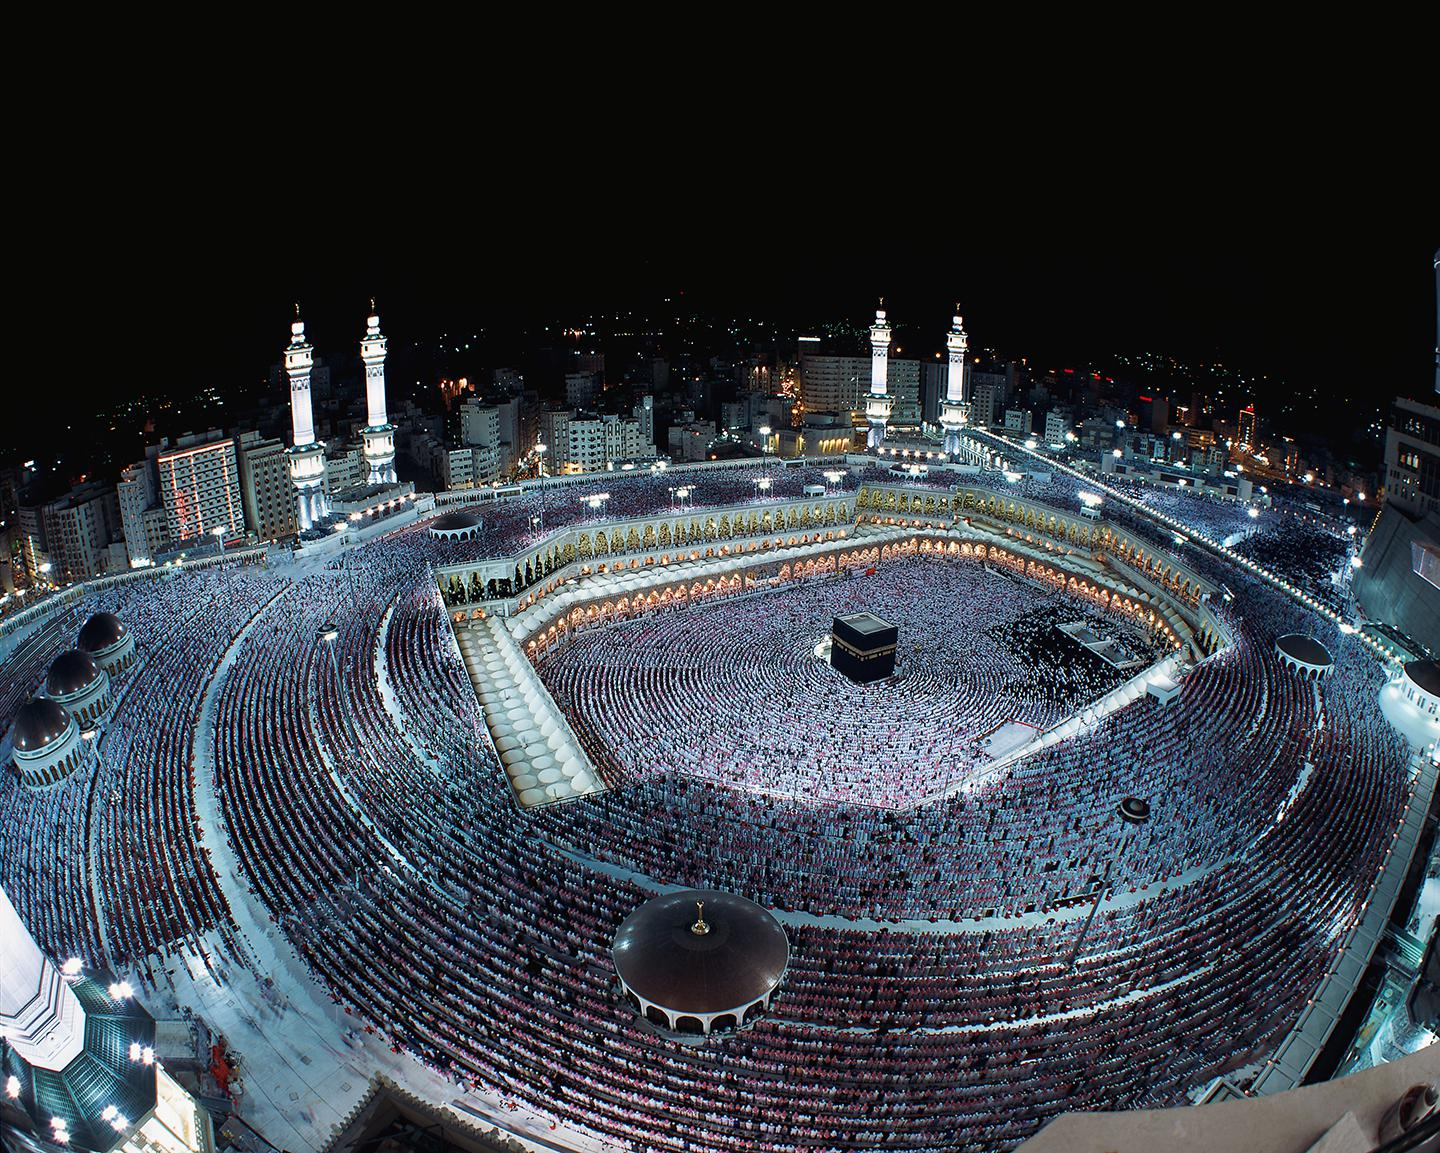 The research gained during hajj is invaluable. Among other things, it can help prevent pandemic-level outbreaks.